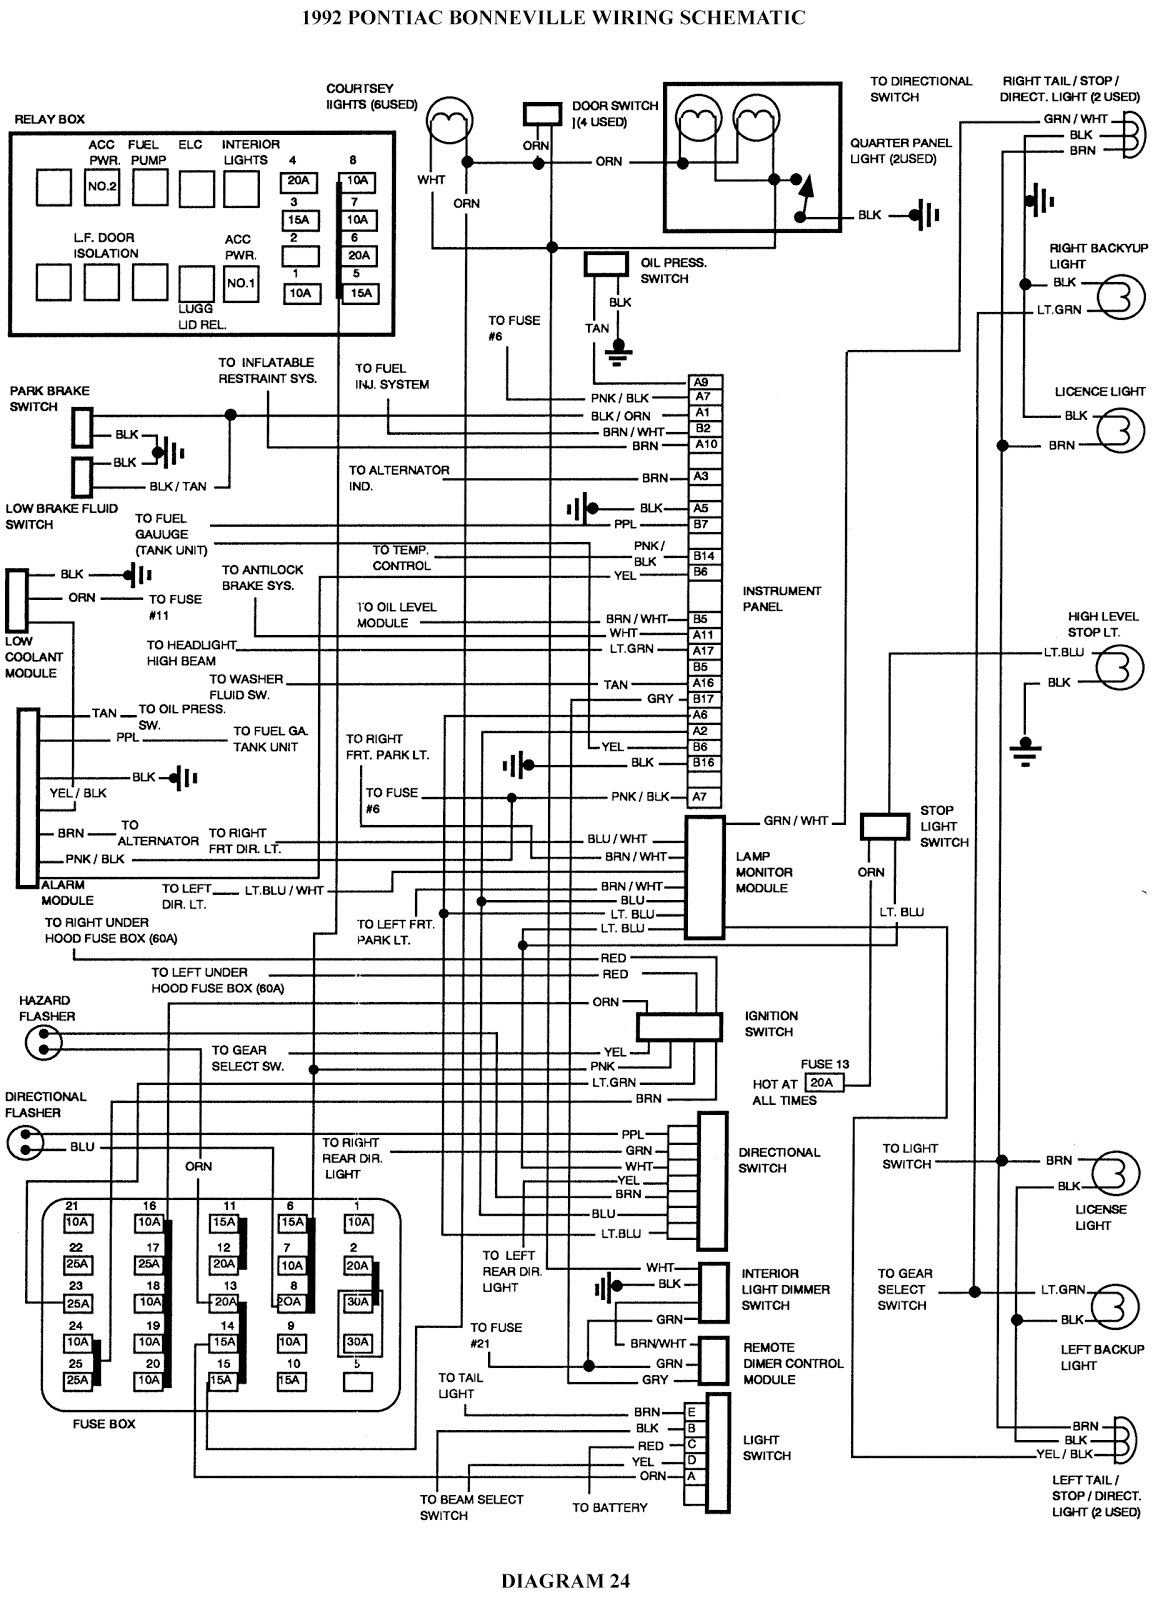 Fire Pump Control Panel Wiring Diagram 3 Way Switch Australia 1992 Pontiac Bonneville Schematic | Diagrams Solutions